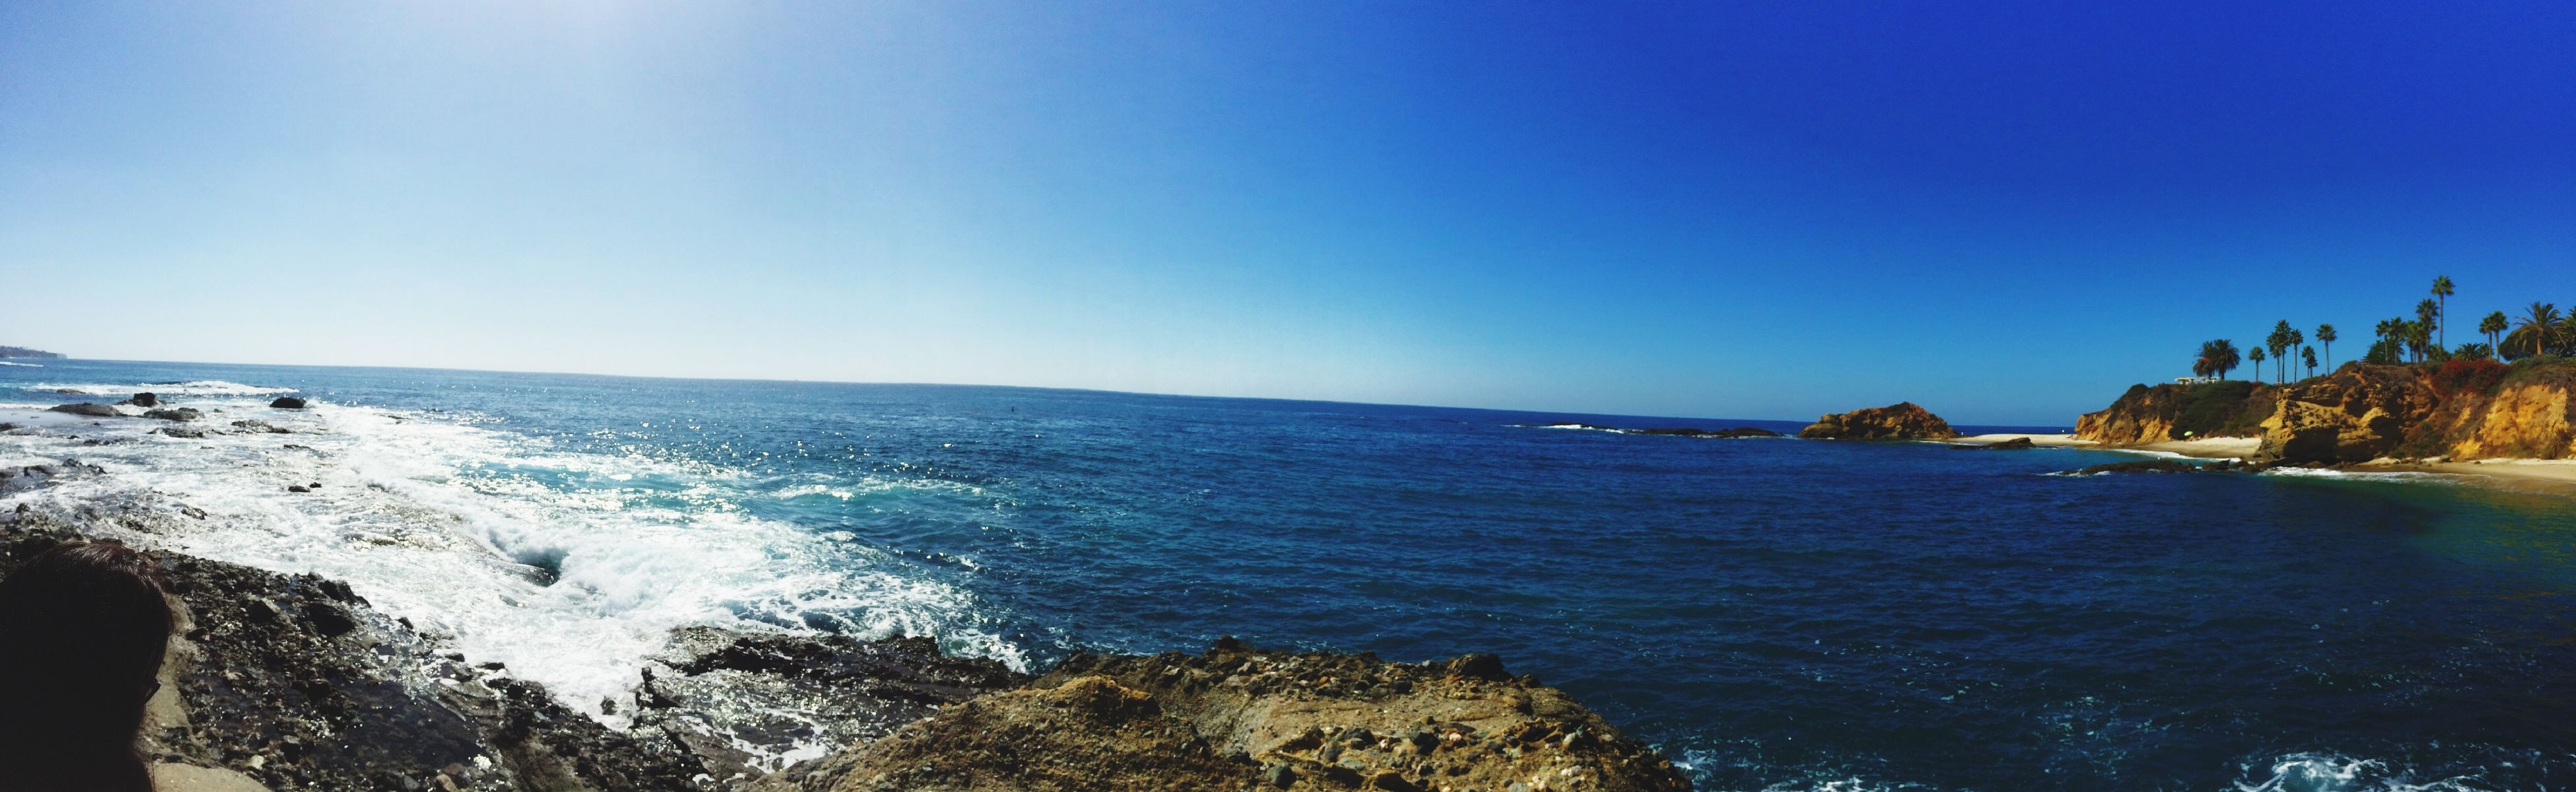 sea, water, blue, clear sky, horizon over water, scenics, copy space, tranquil scene, beauty in nature, tranquility, nature, beach, idyllic, coastline, shore, day, sky, wave, outdoors, sunlight